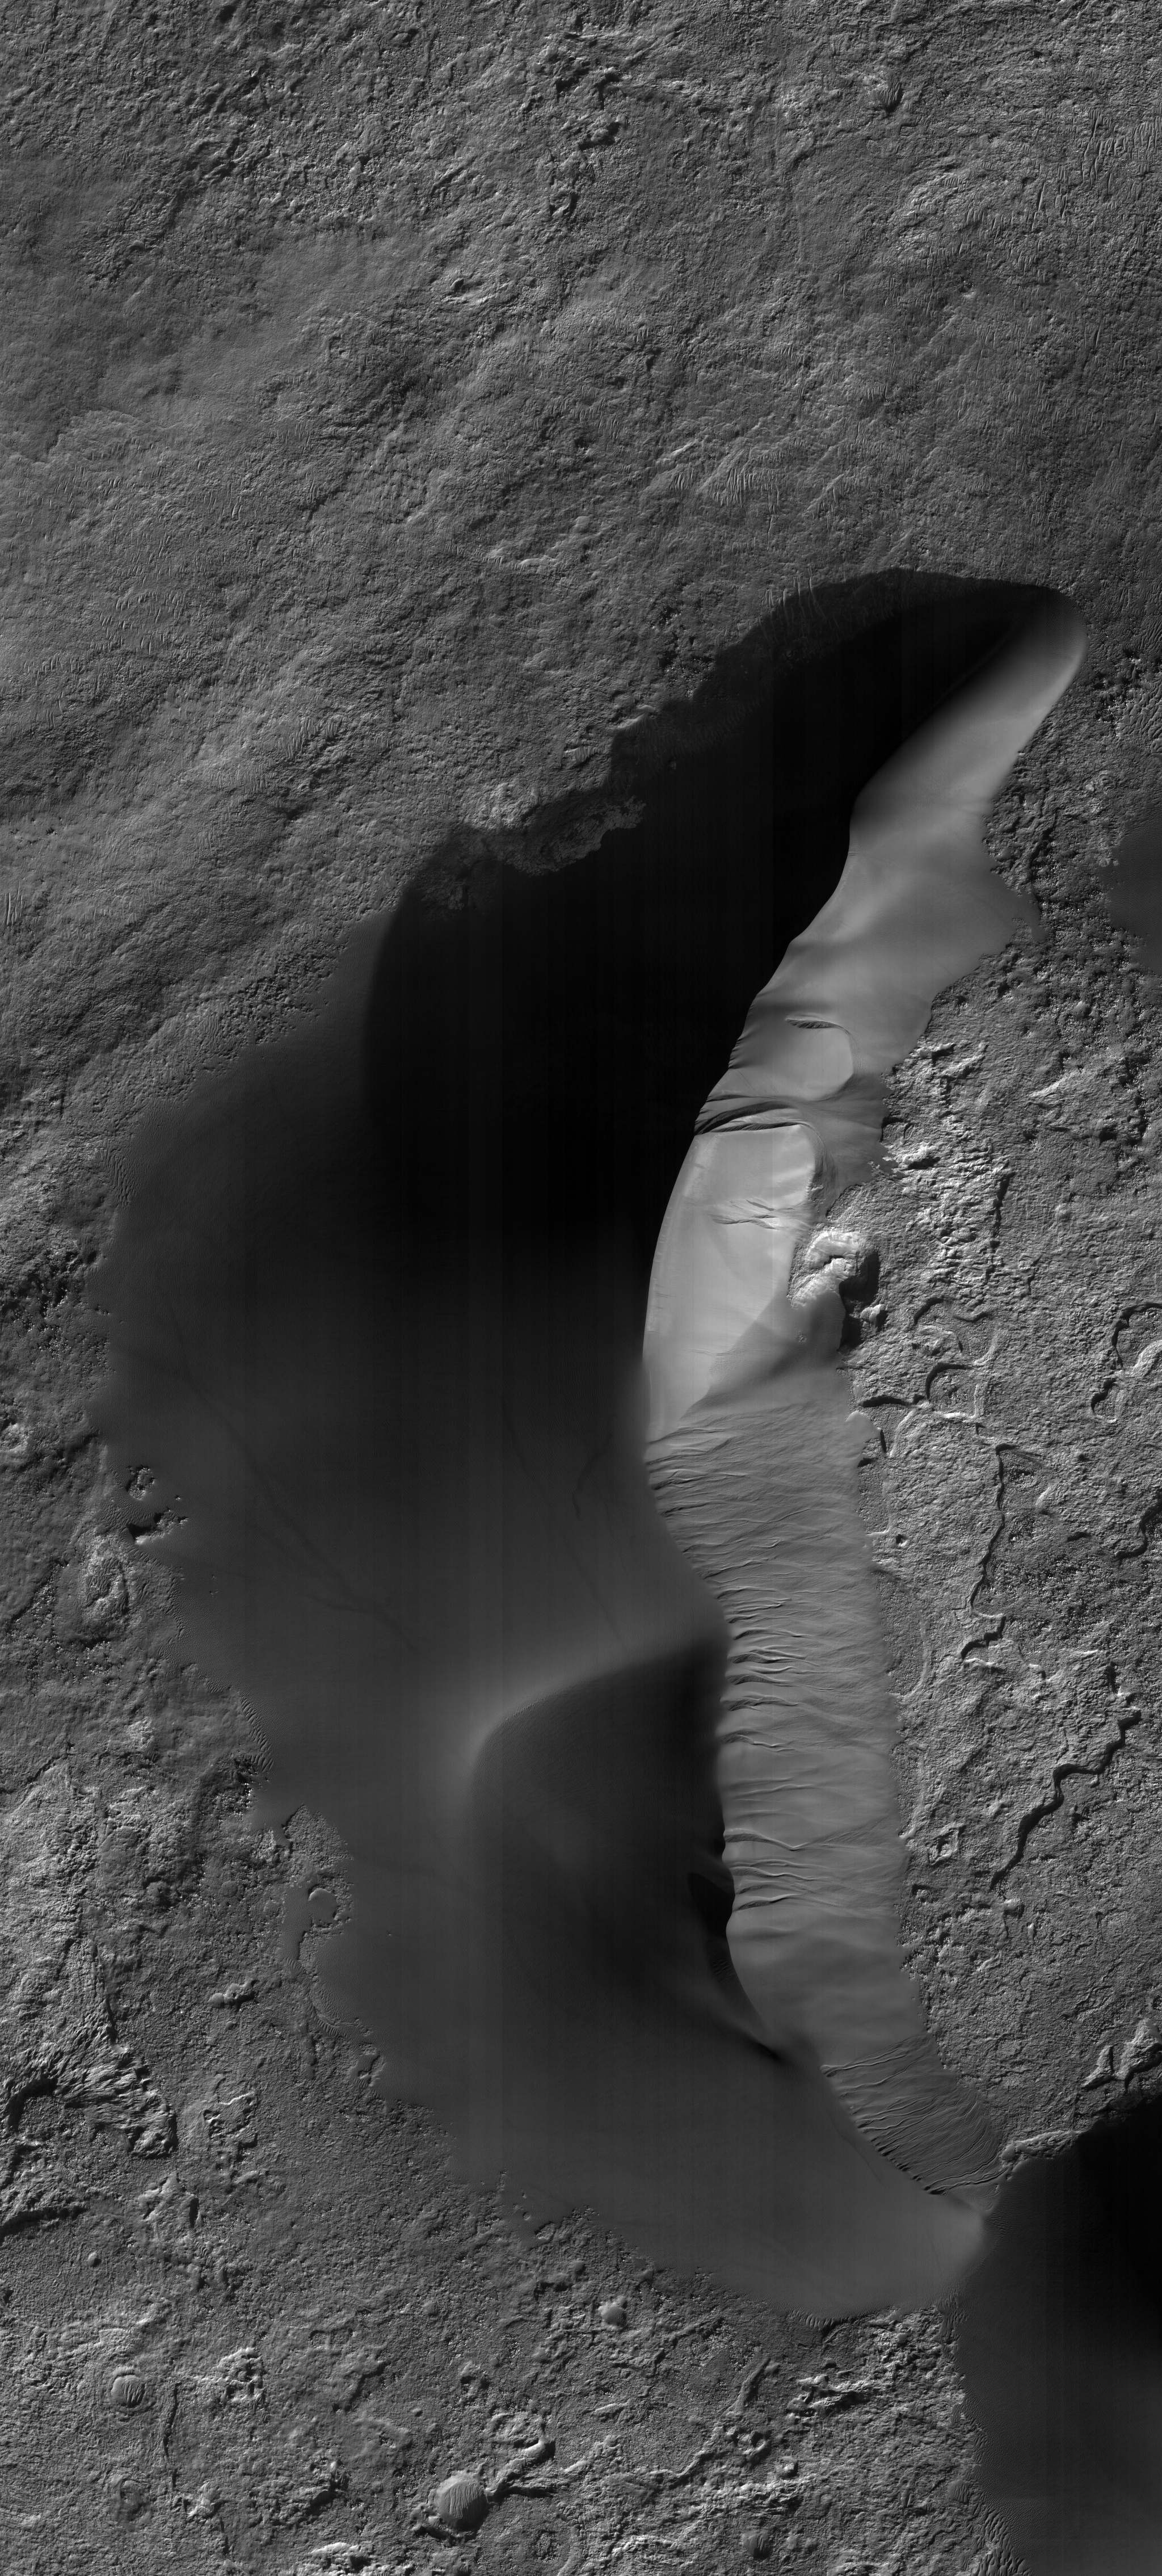 HiRISE image of the main Kaiser barchan dune. Can you spot the dust devil tracks on the left of the dune? HiRISE ESP-025689-1330